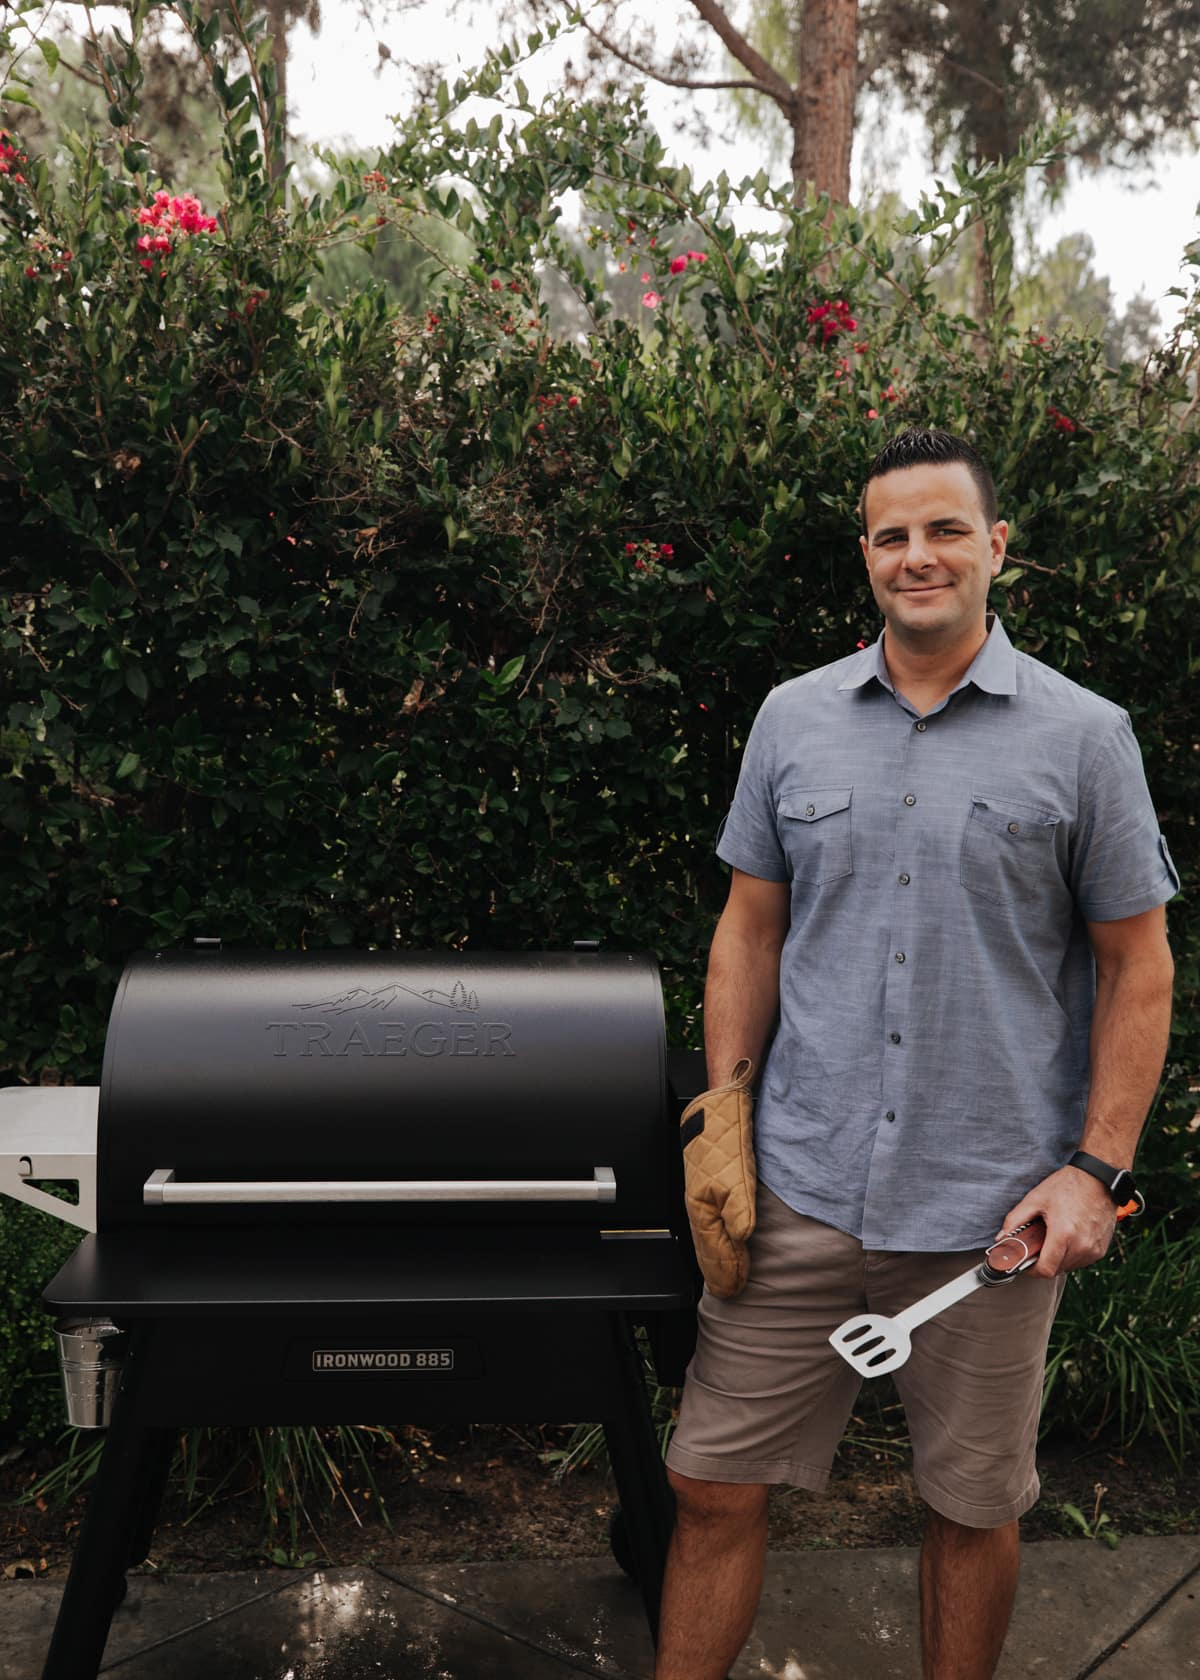 traeger smoker grill deal qvc